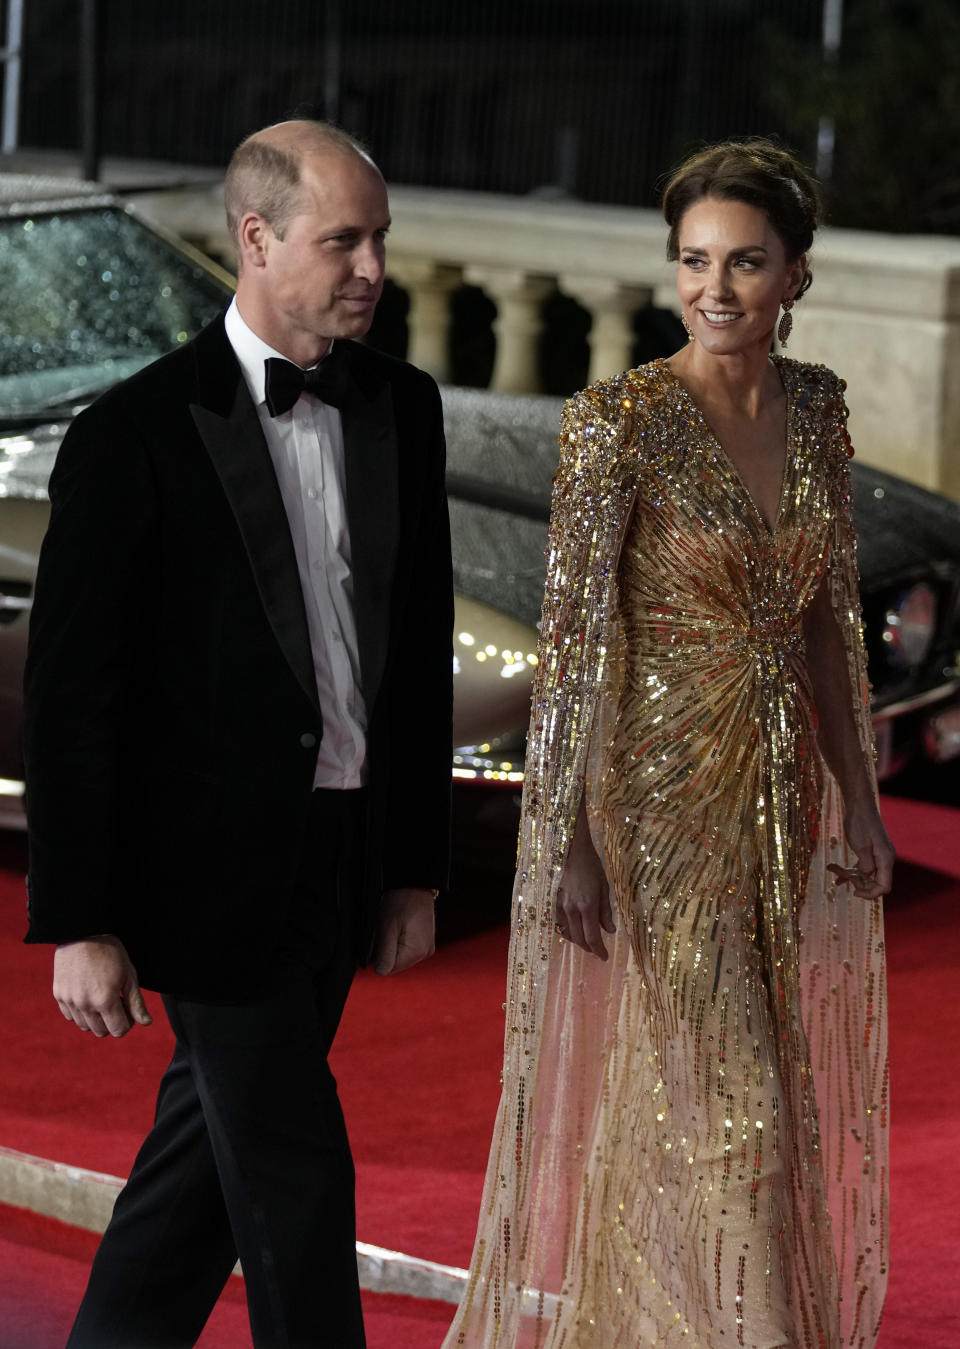 Britain's Prince William, left, and his wife Kate the Duchess of Cambridge arrive for the World premiere of the new film from the James Bond franchise 'No Time To Die', in London Tuesday, Sept. 28, 2021. (AP Photo/Matt Dunham)